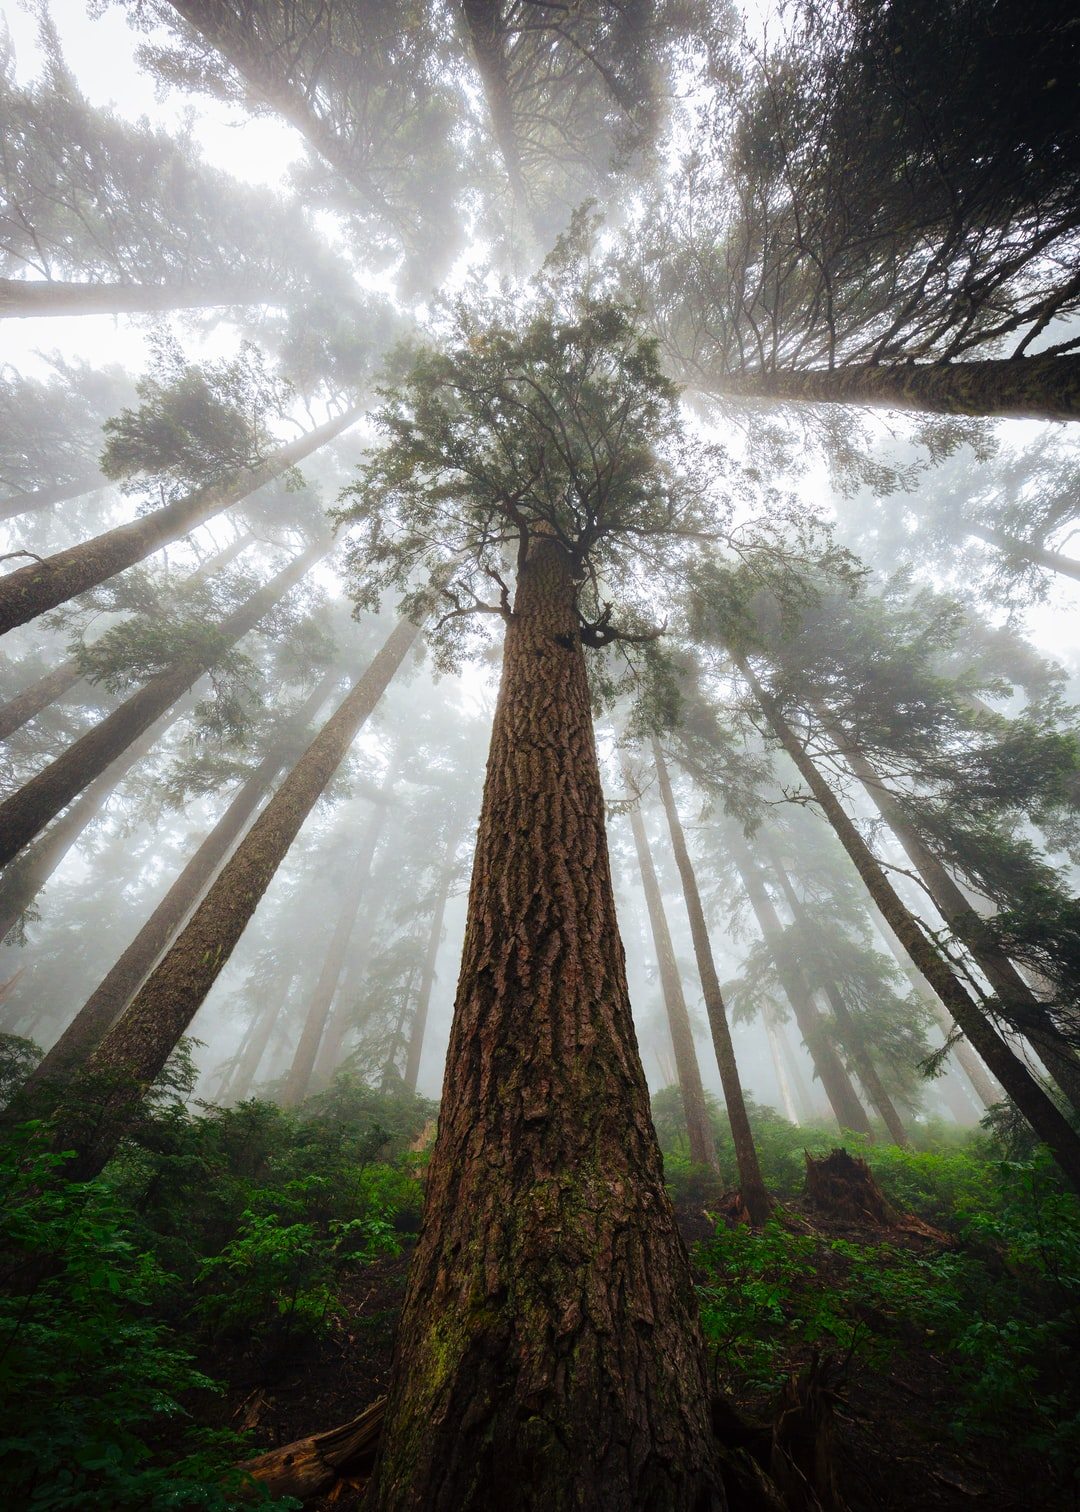 Foggy forests are one of my favorite experiences.